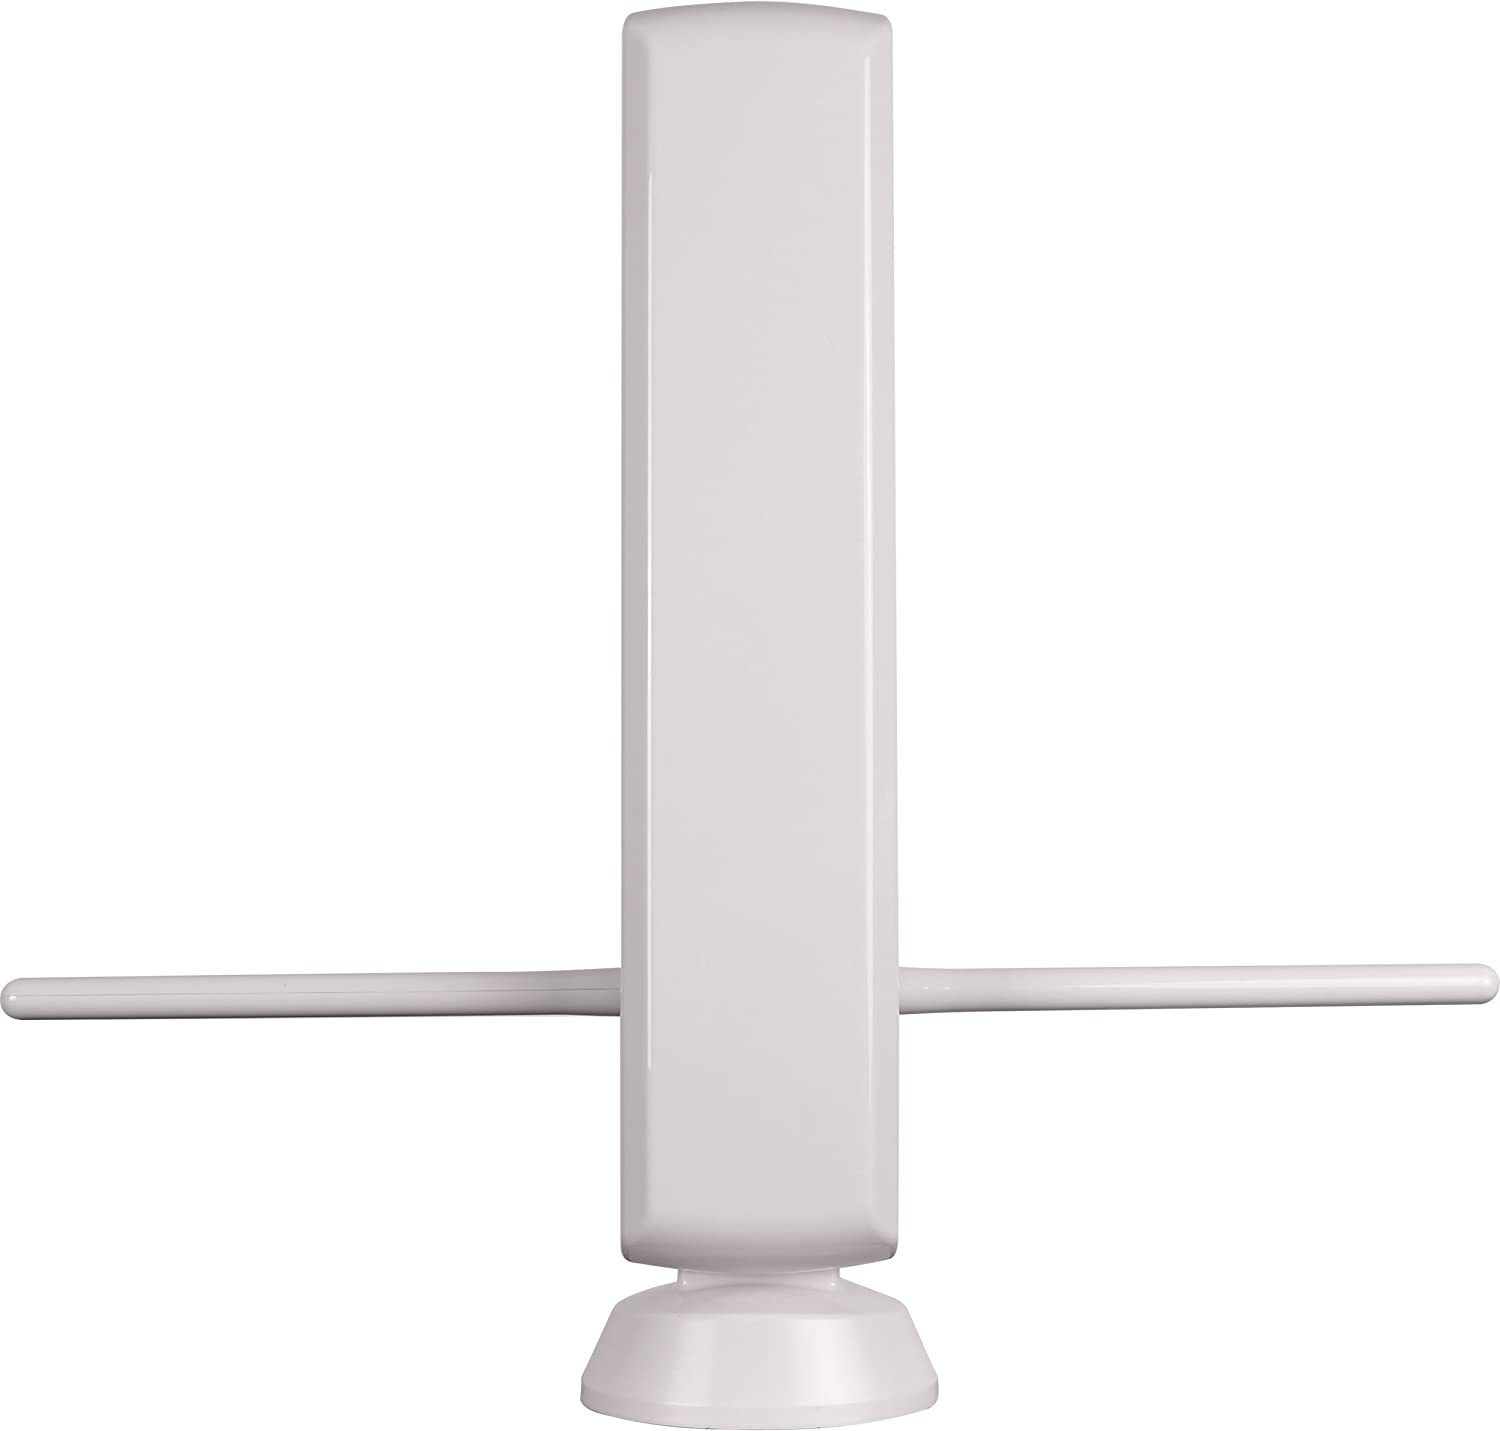 HDTV Long Distance Multidirectional Amplified Indoor/Outdoor Digital TV Antenna. Long Range High-Definition UHF - VHF Reception Whole House Performance 150 Mile